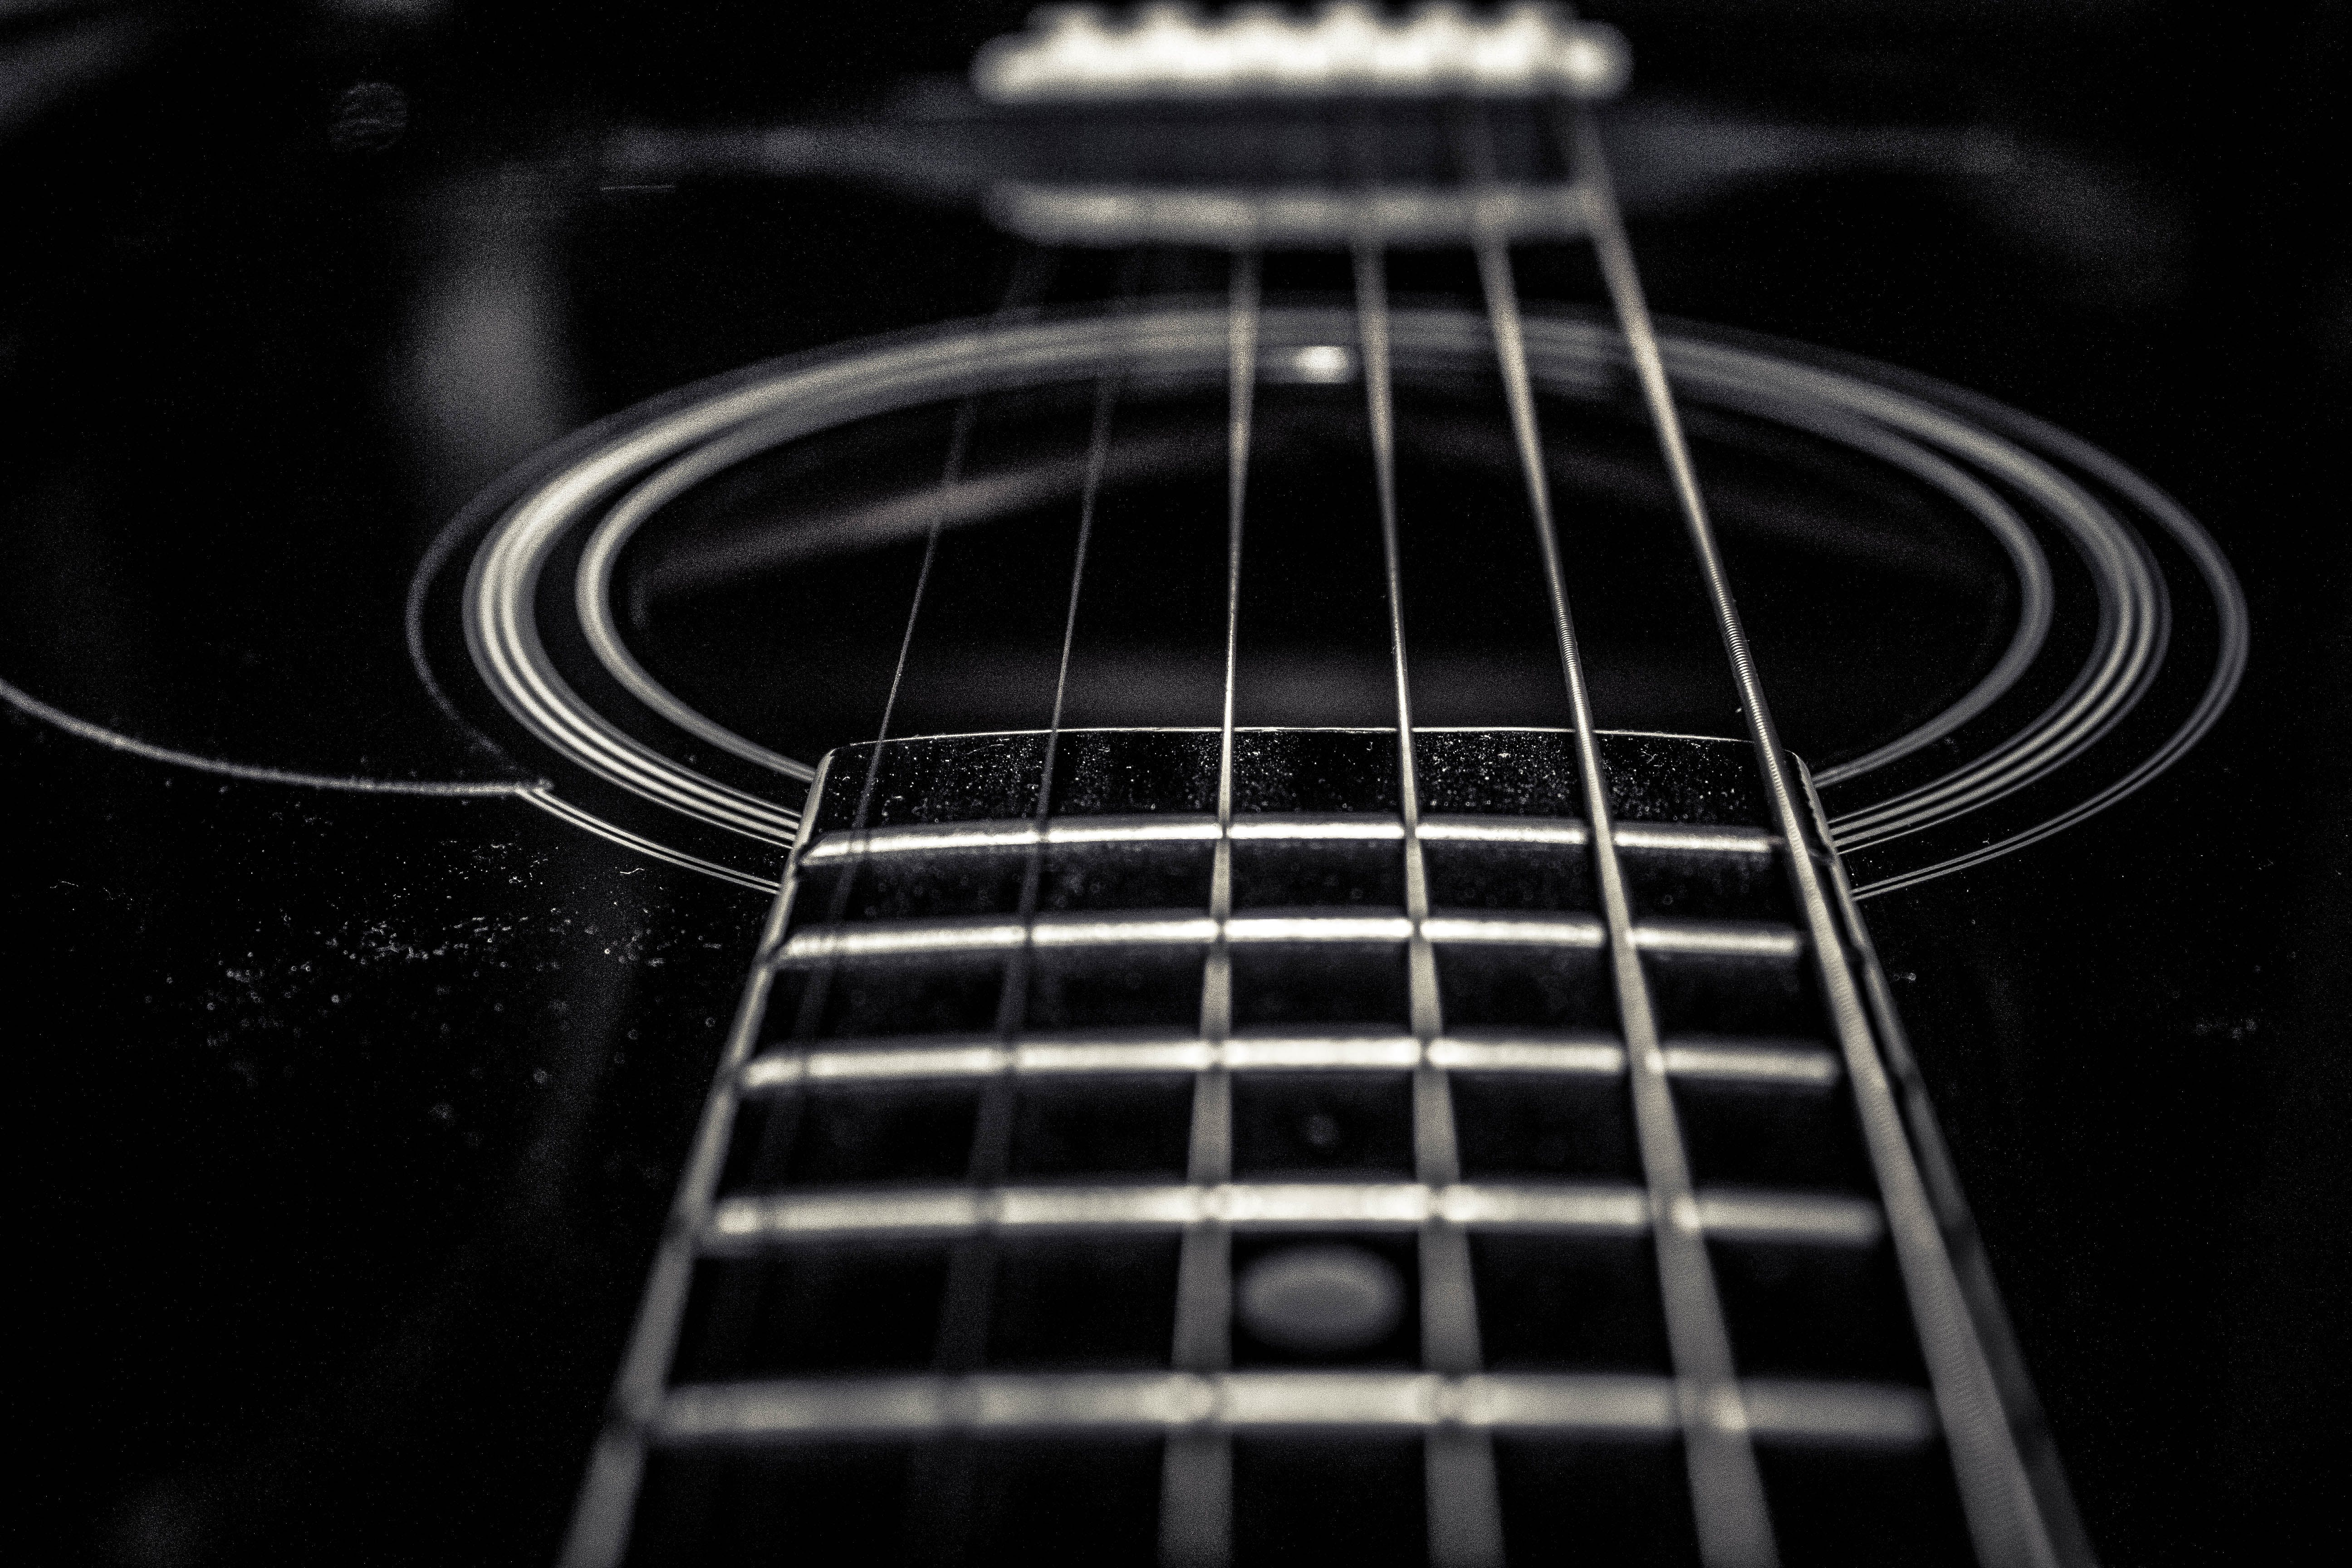 Free stock photo of music, black and white, acoustic guitar, guitar strings